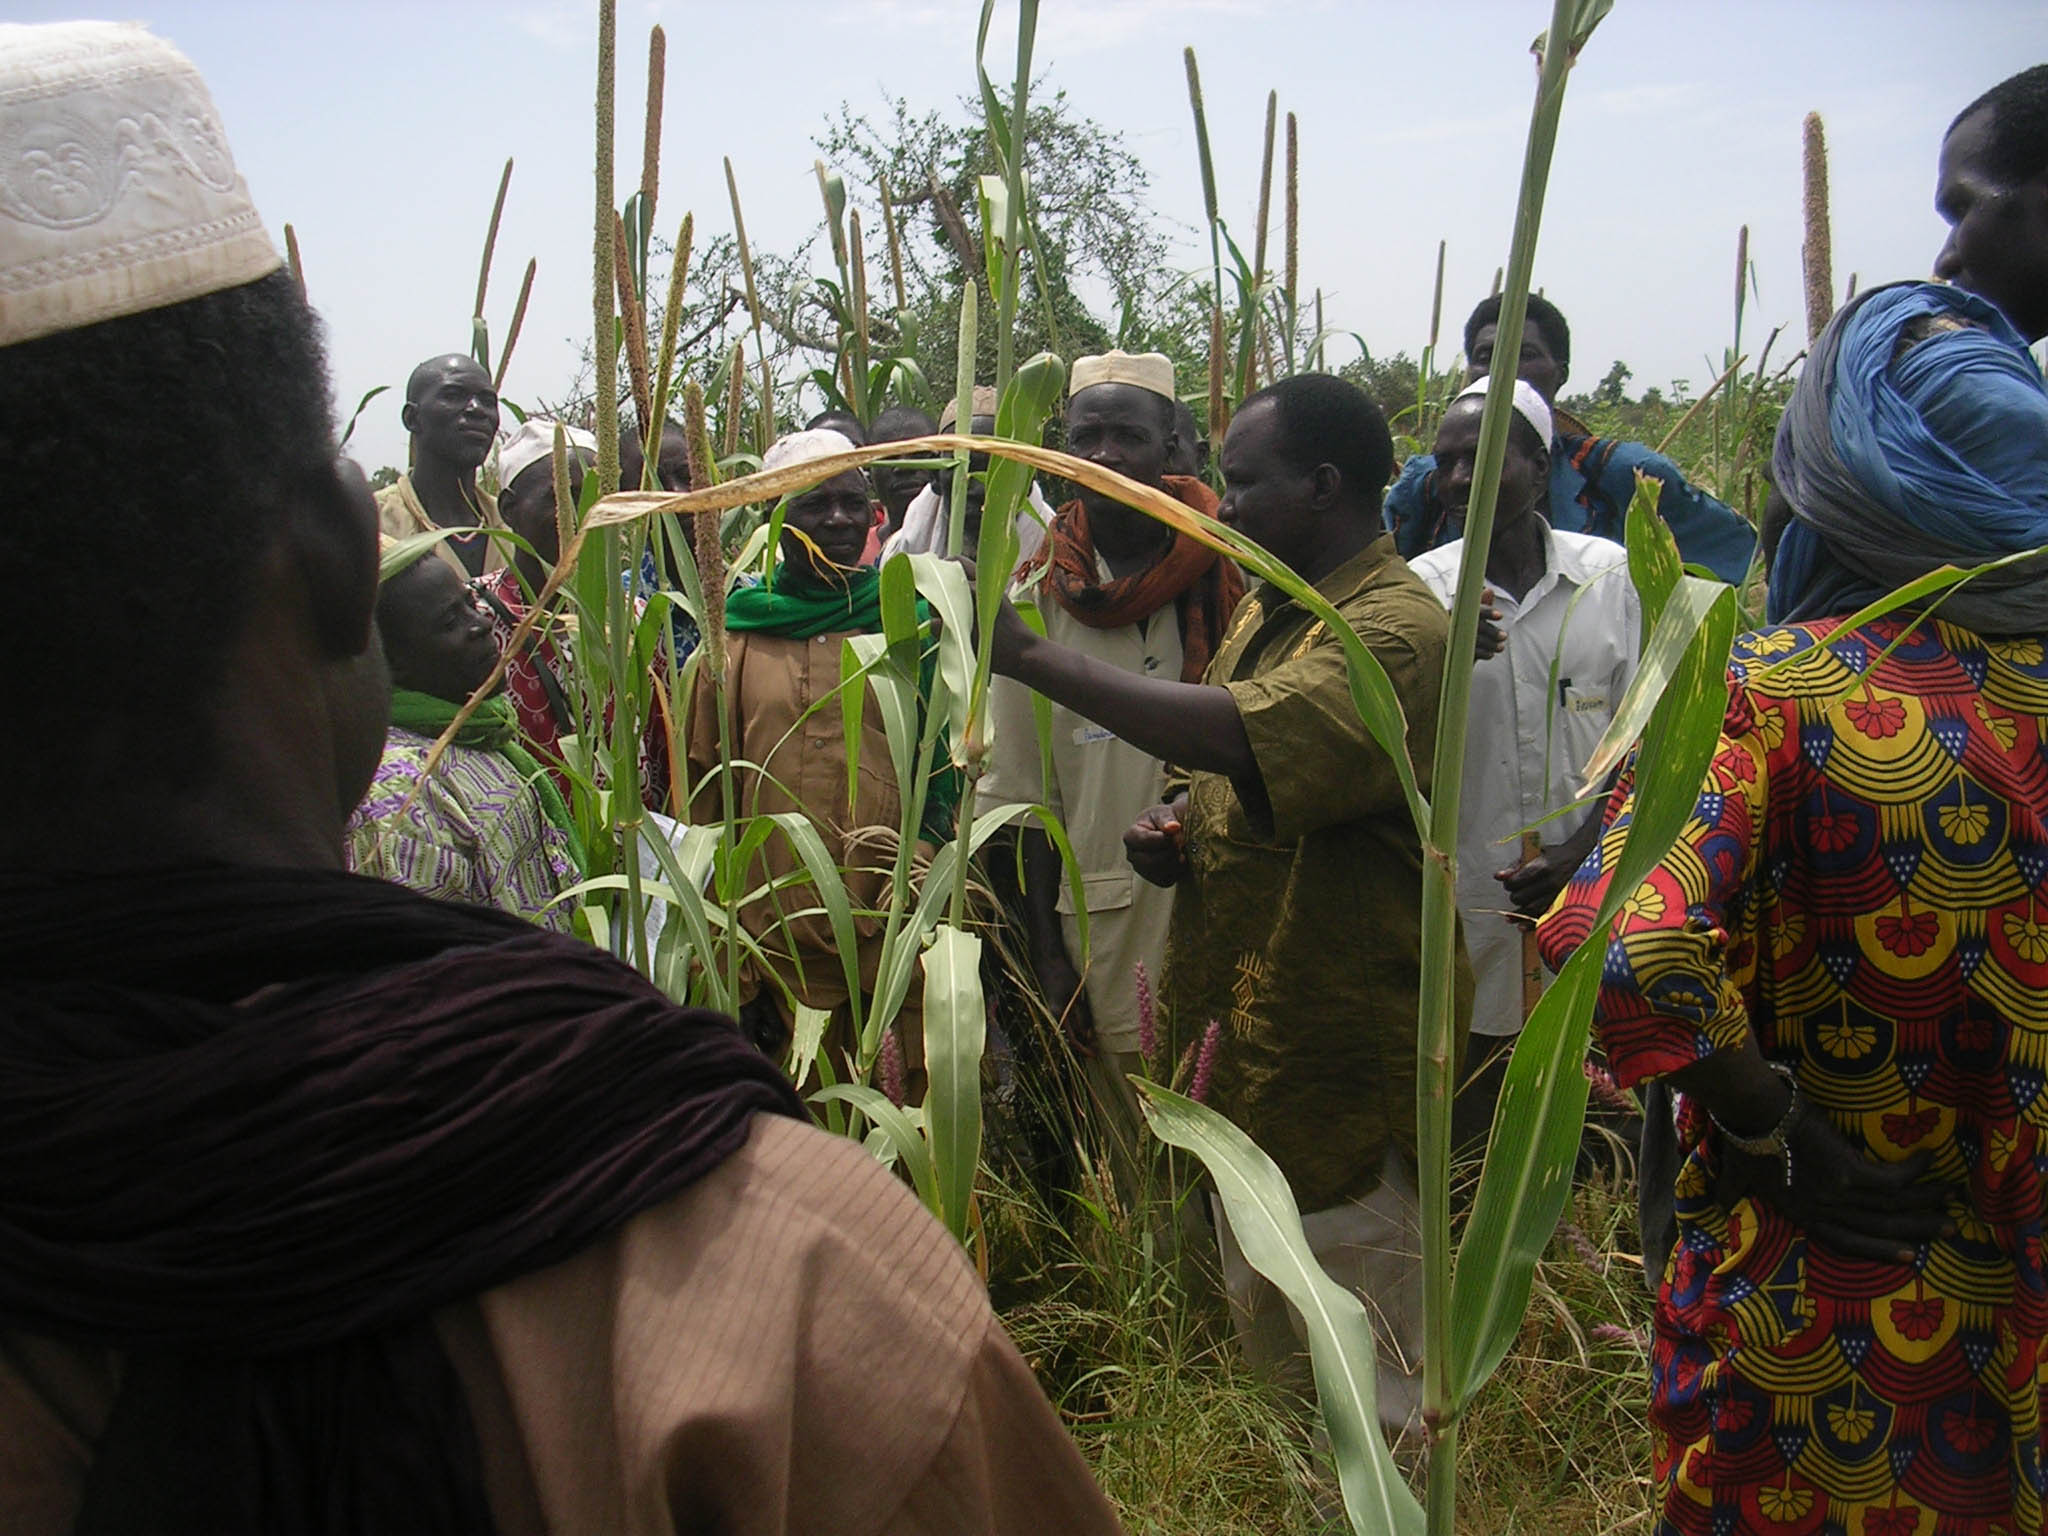 Farmers are trained on pearl millet phenology, which studies the plant life cycle and how it is influenced by seasonal variations in climate and habitat.